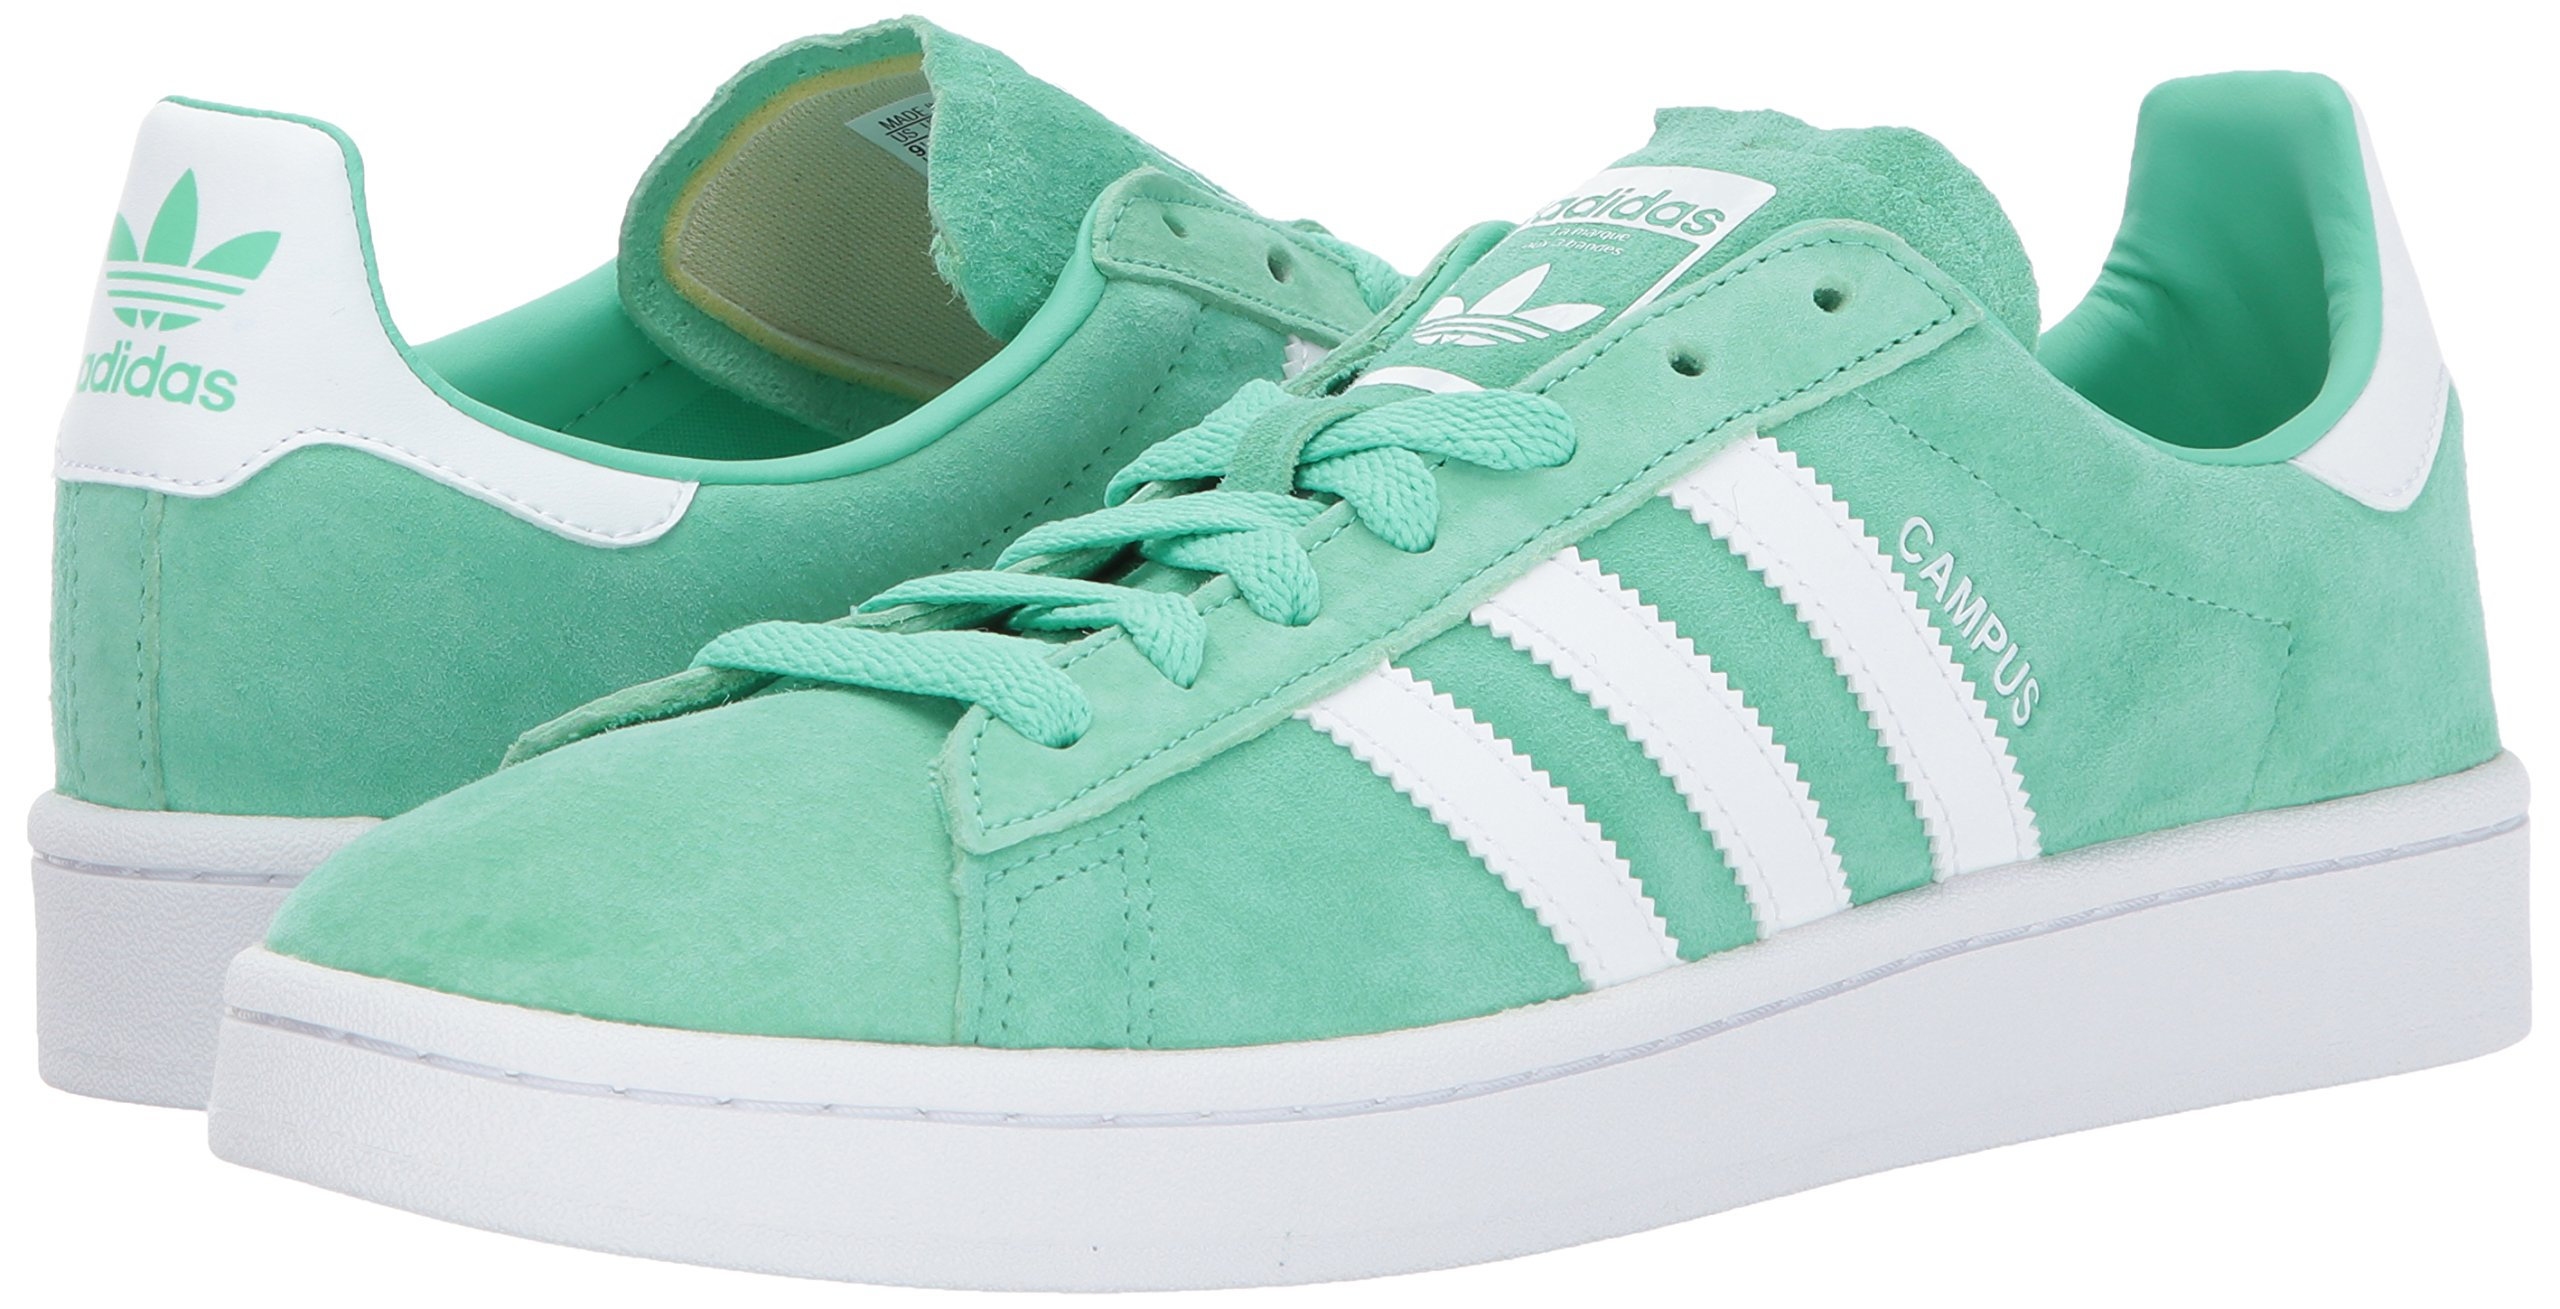 adidas Originals Men's Campus Sneakers -, Green Glow Crystal White, (11 M US) by adidas Originals (Image #6)